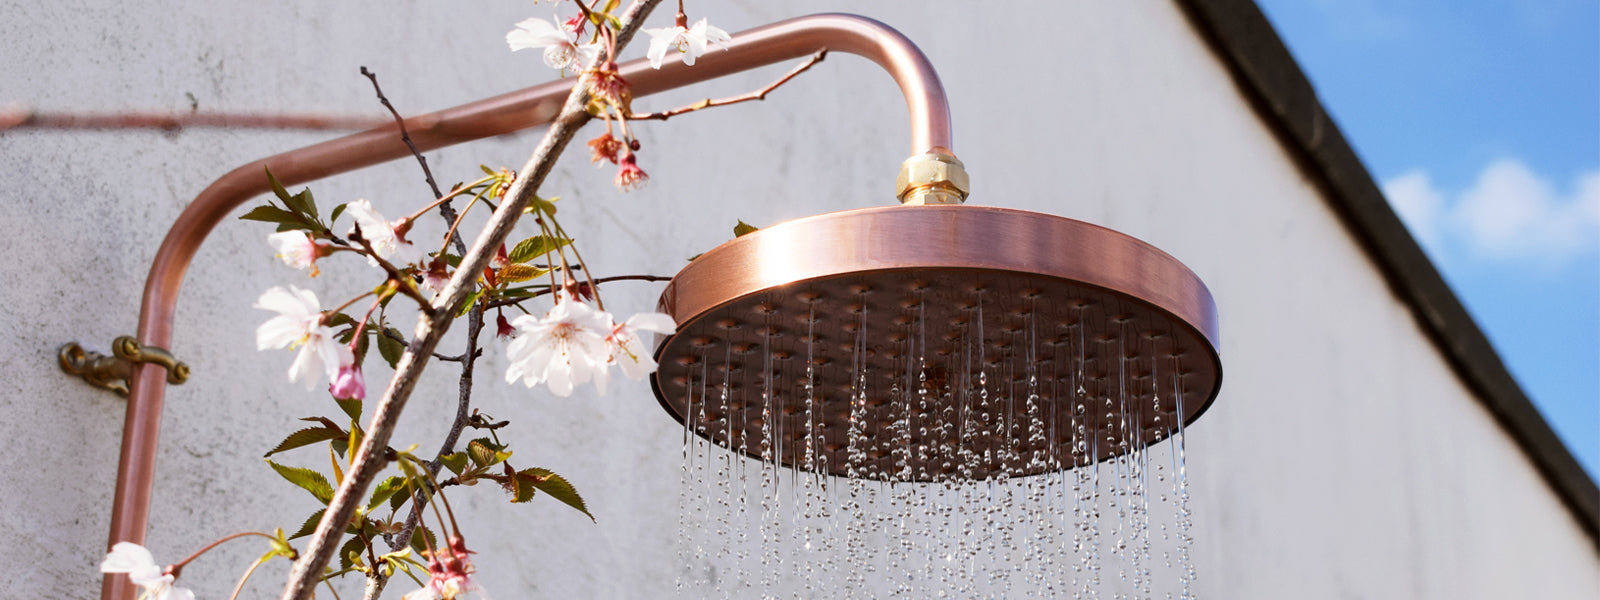 Proper Copper Design Outdoor Shower Minimal Industrial Interior Design Summer Stylish